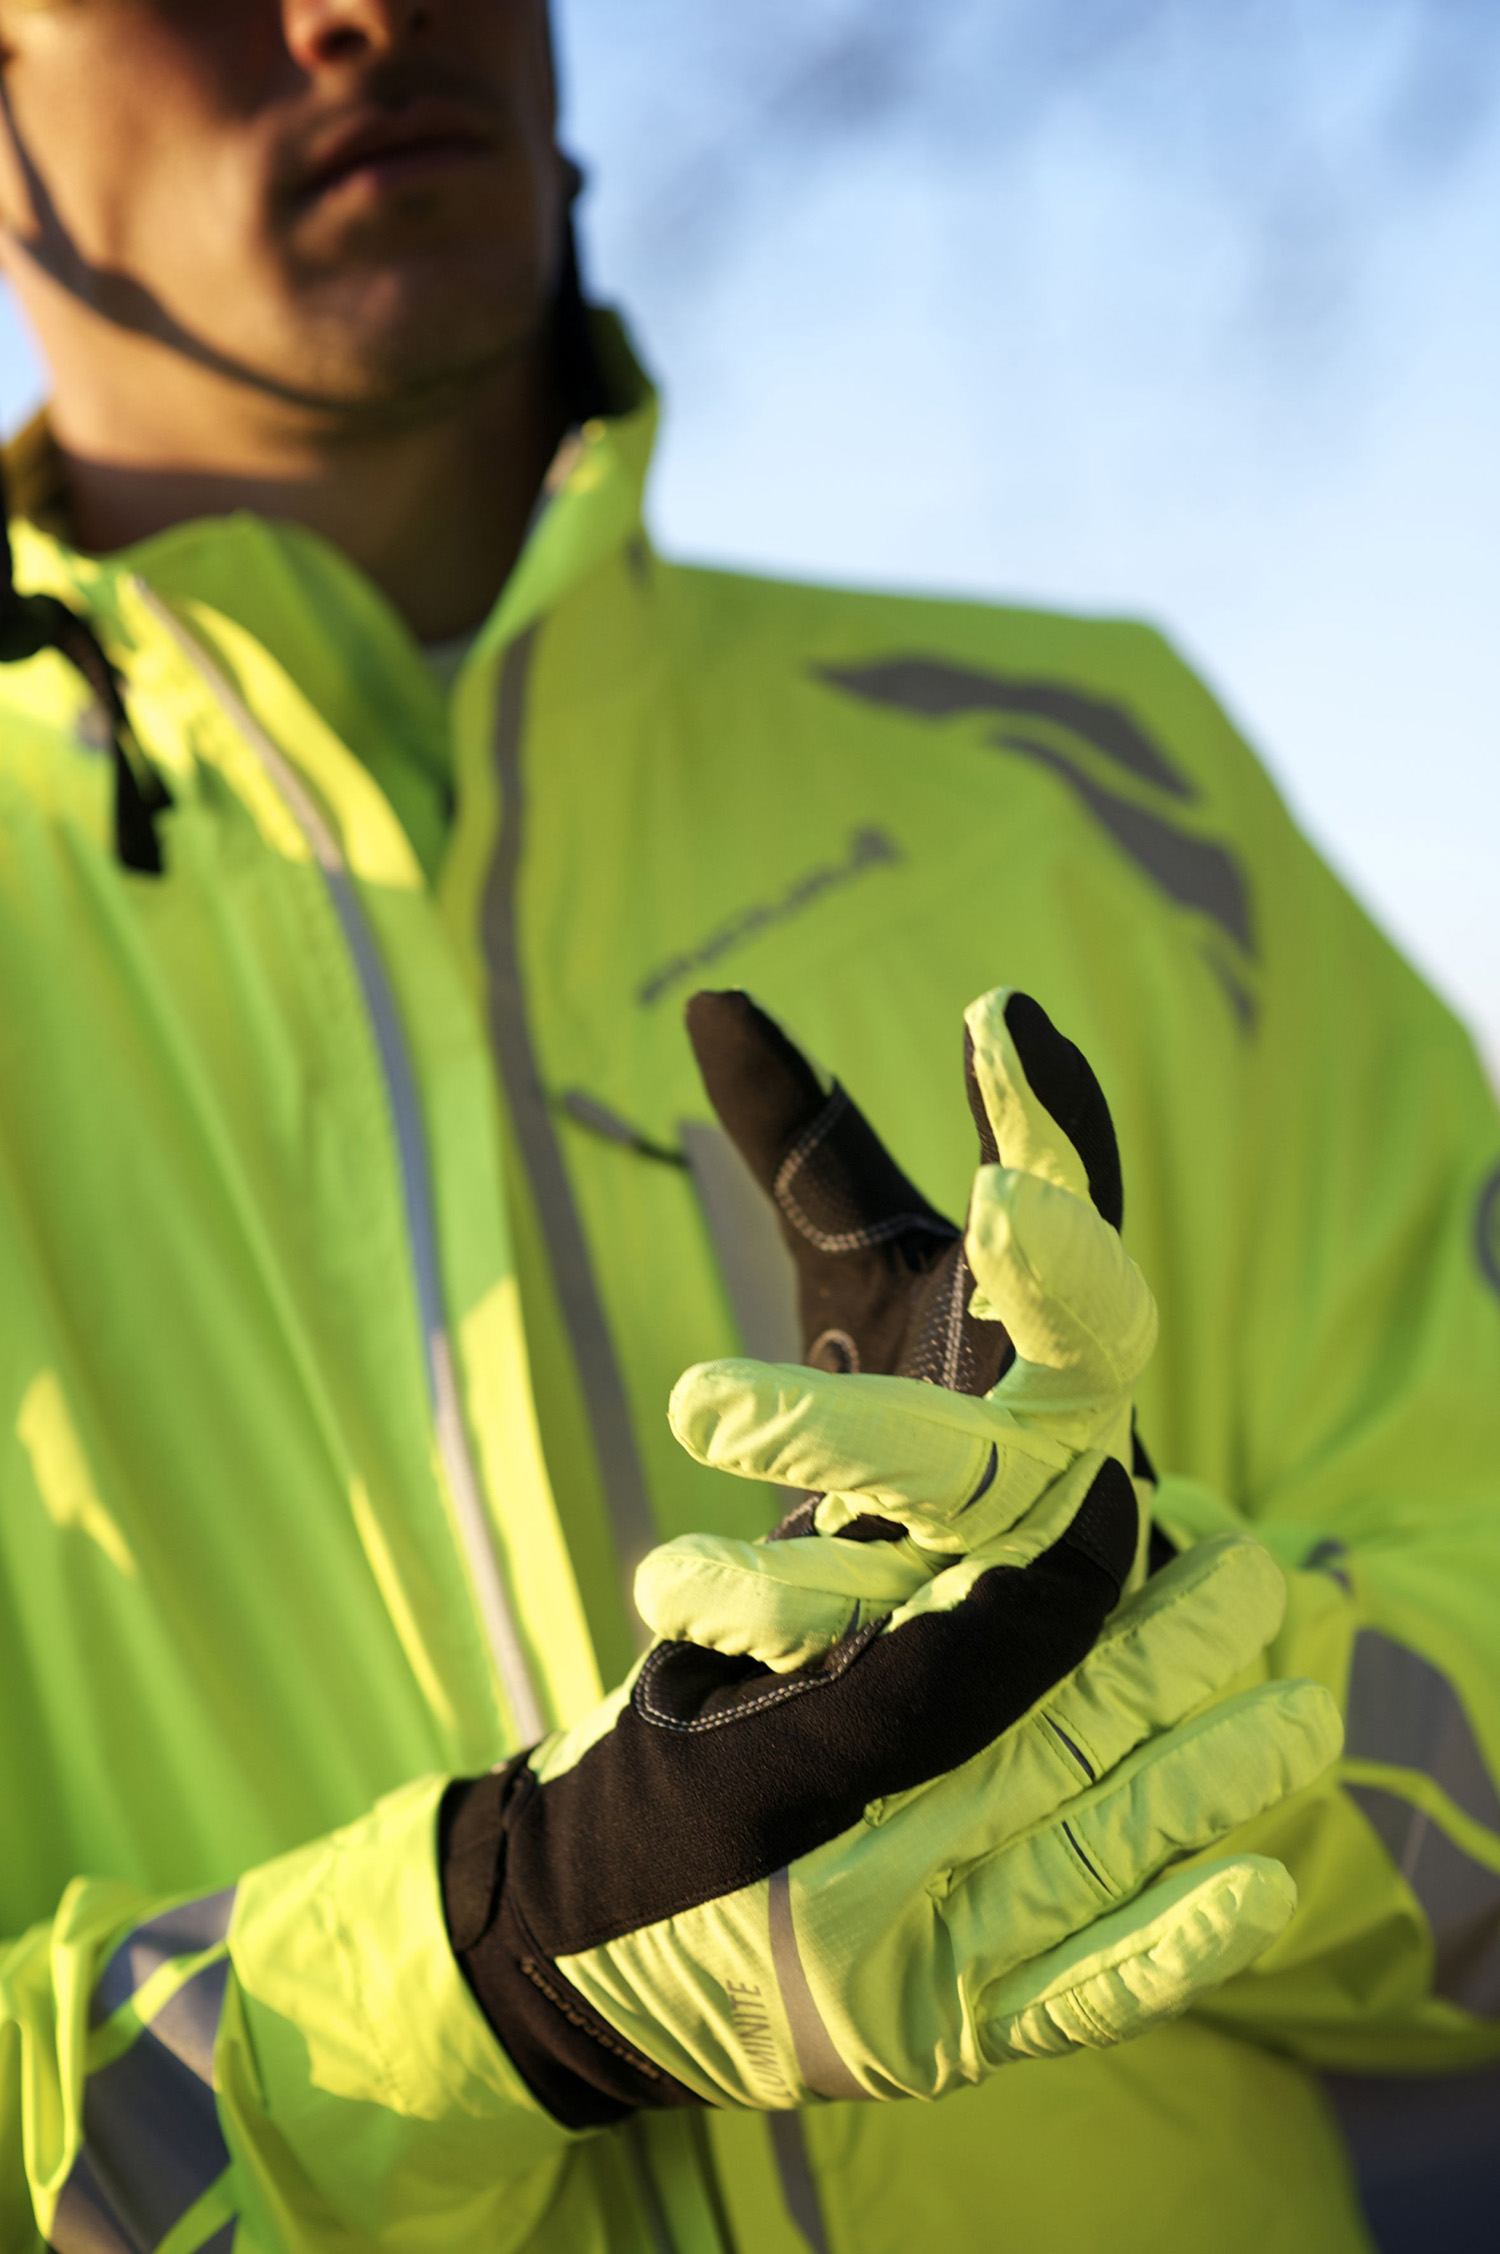 Luminite Glove - Visibilty and Comfort